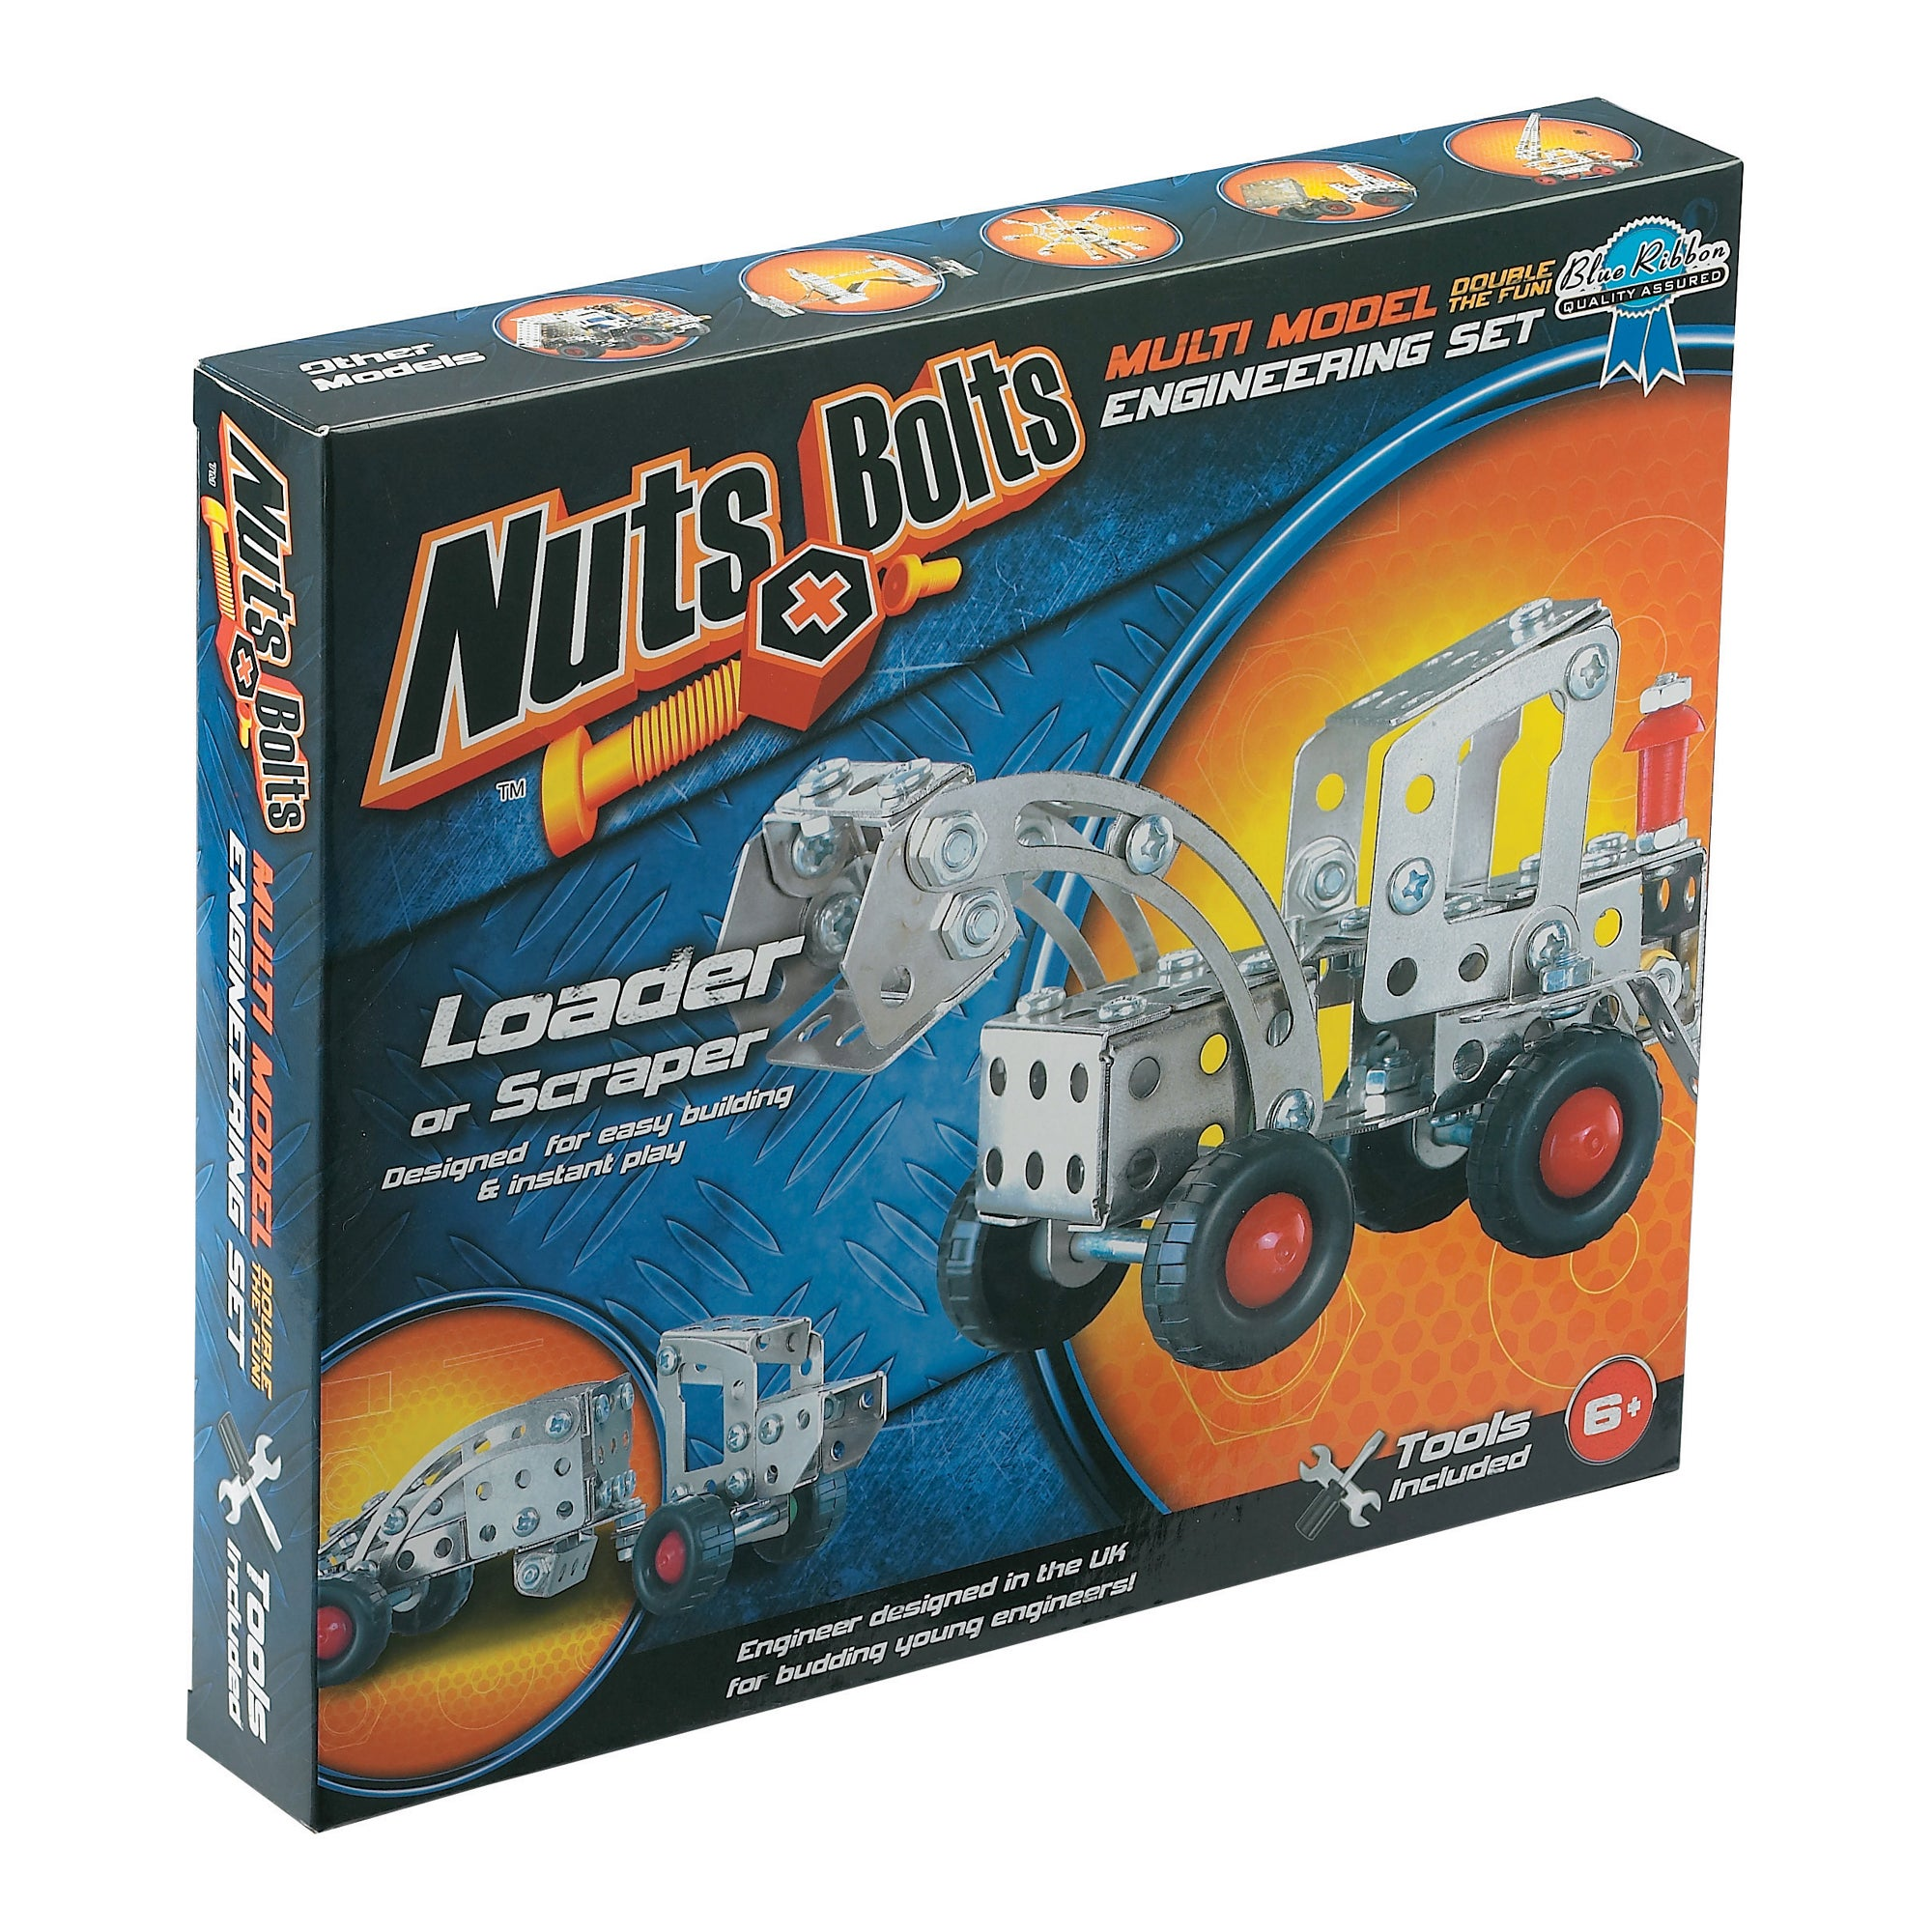 Nuts and Bolts Loader or Scraper Model Engineering Set